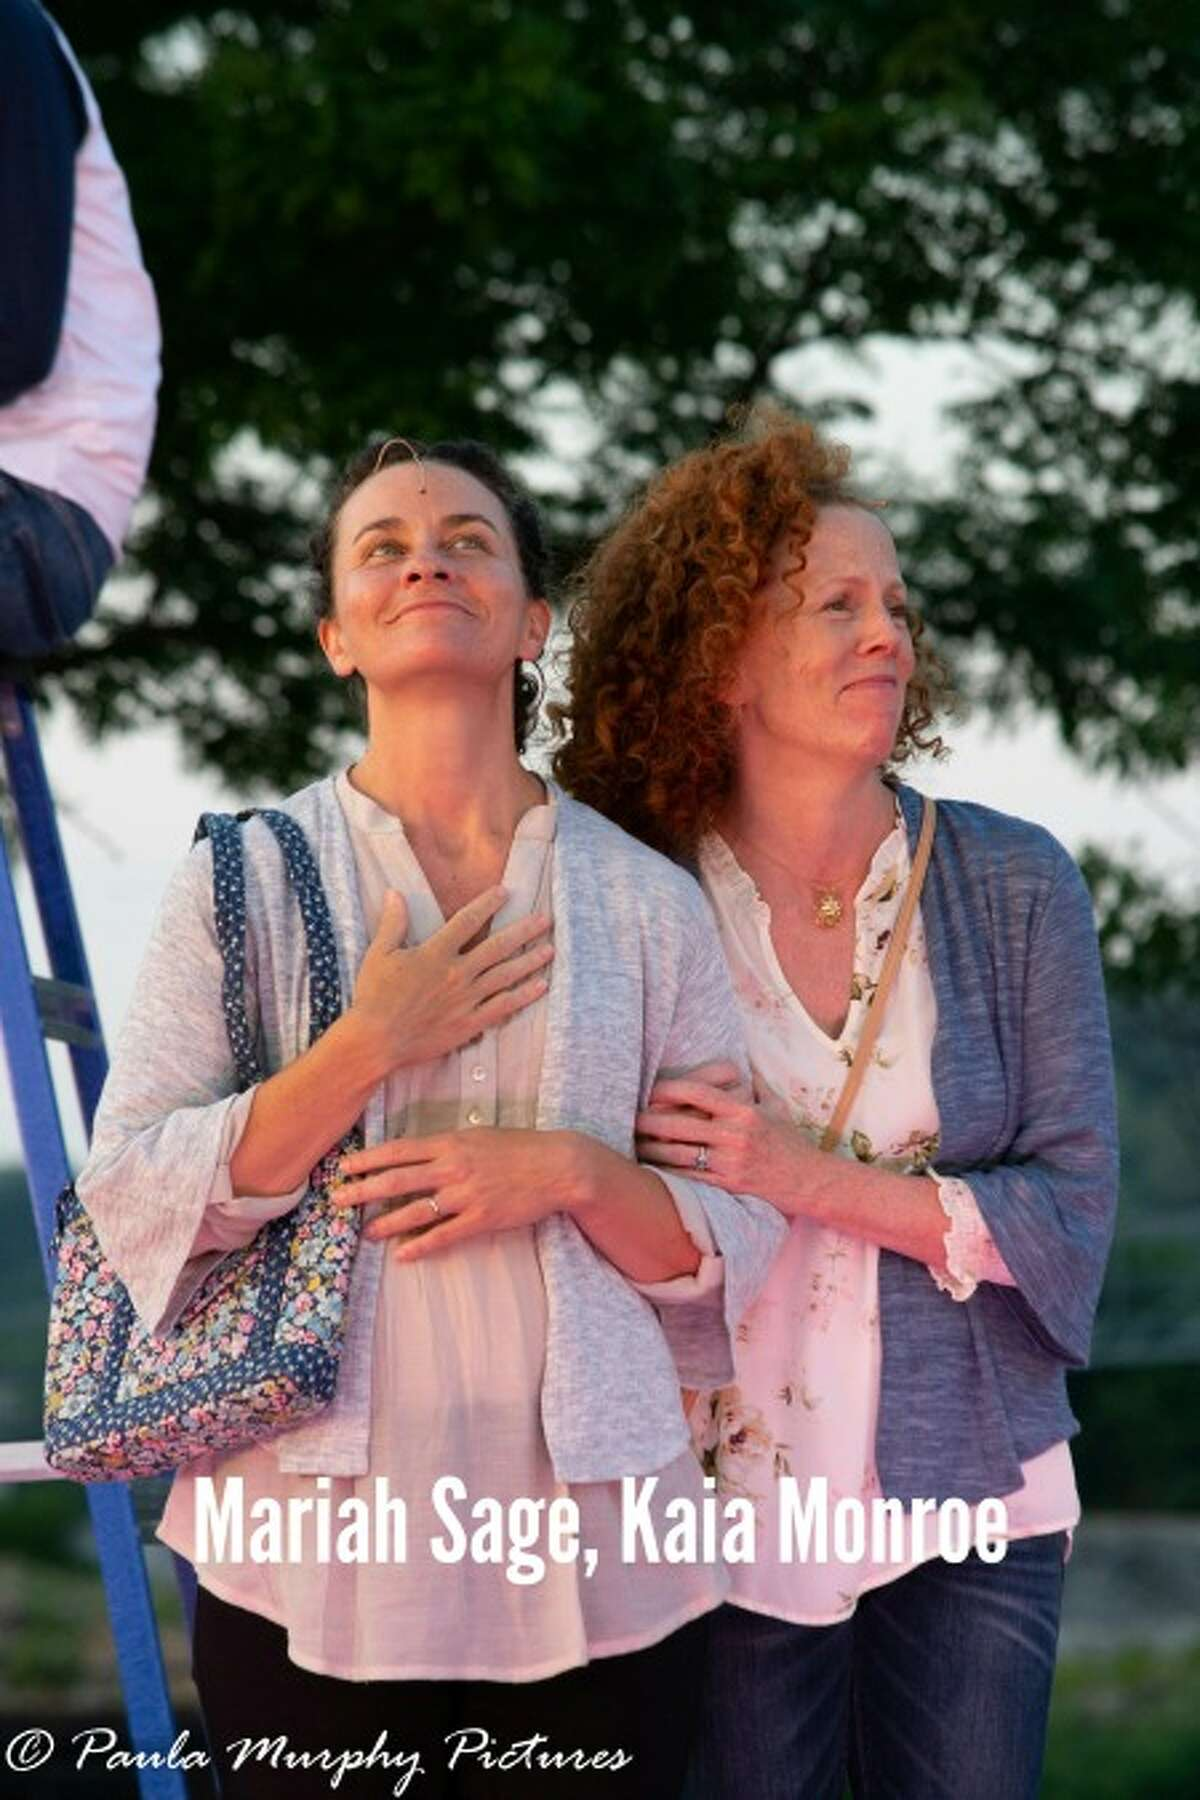 'Our Town' opened Thursday night at Riverwalk Park. Free performances continue now through Sunday, July 15. - Paula Murphy Meehan photos